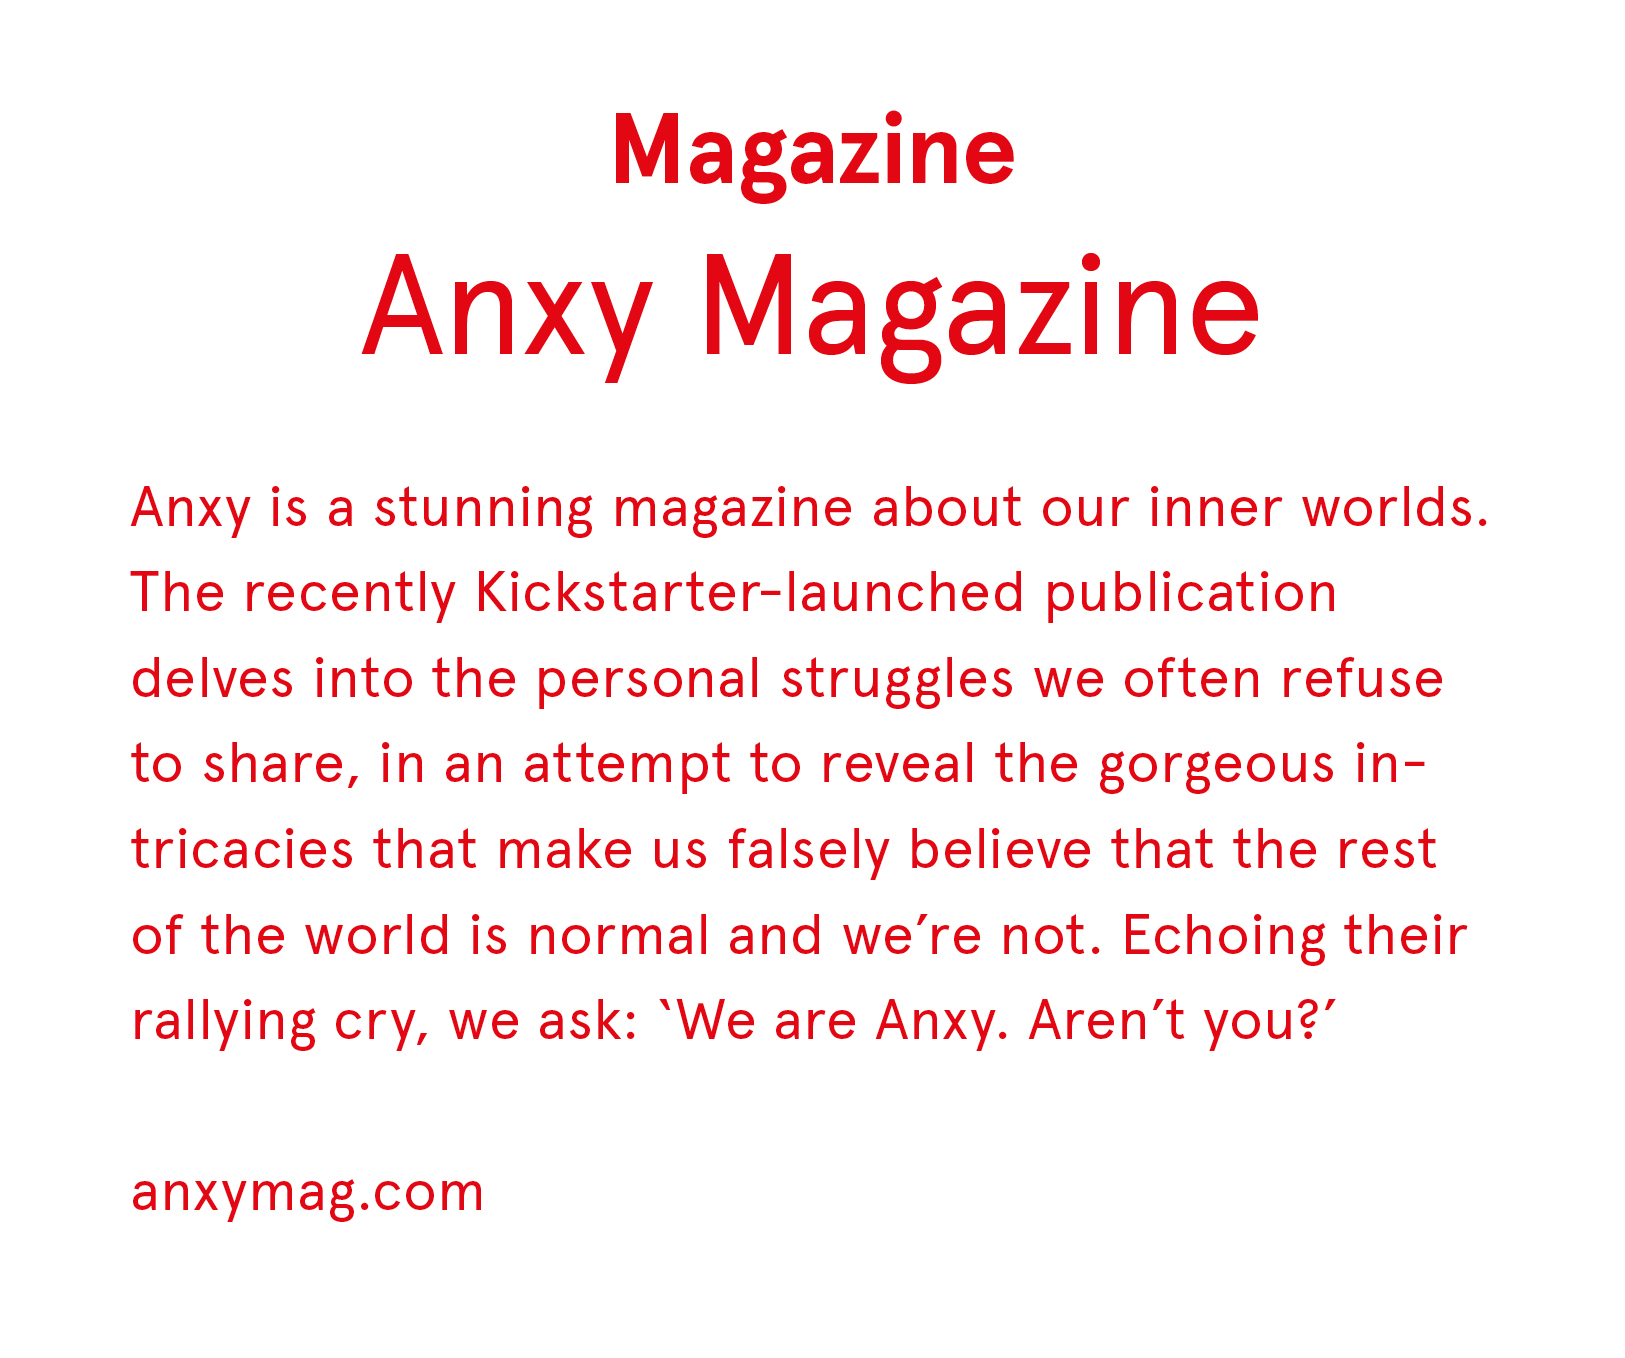 anxy mag